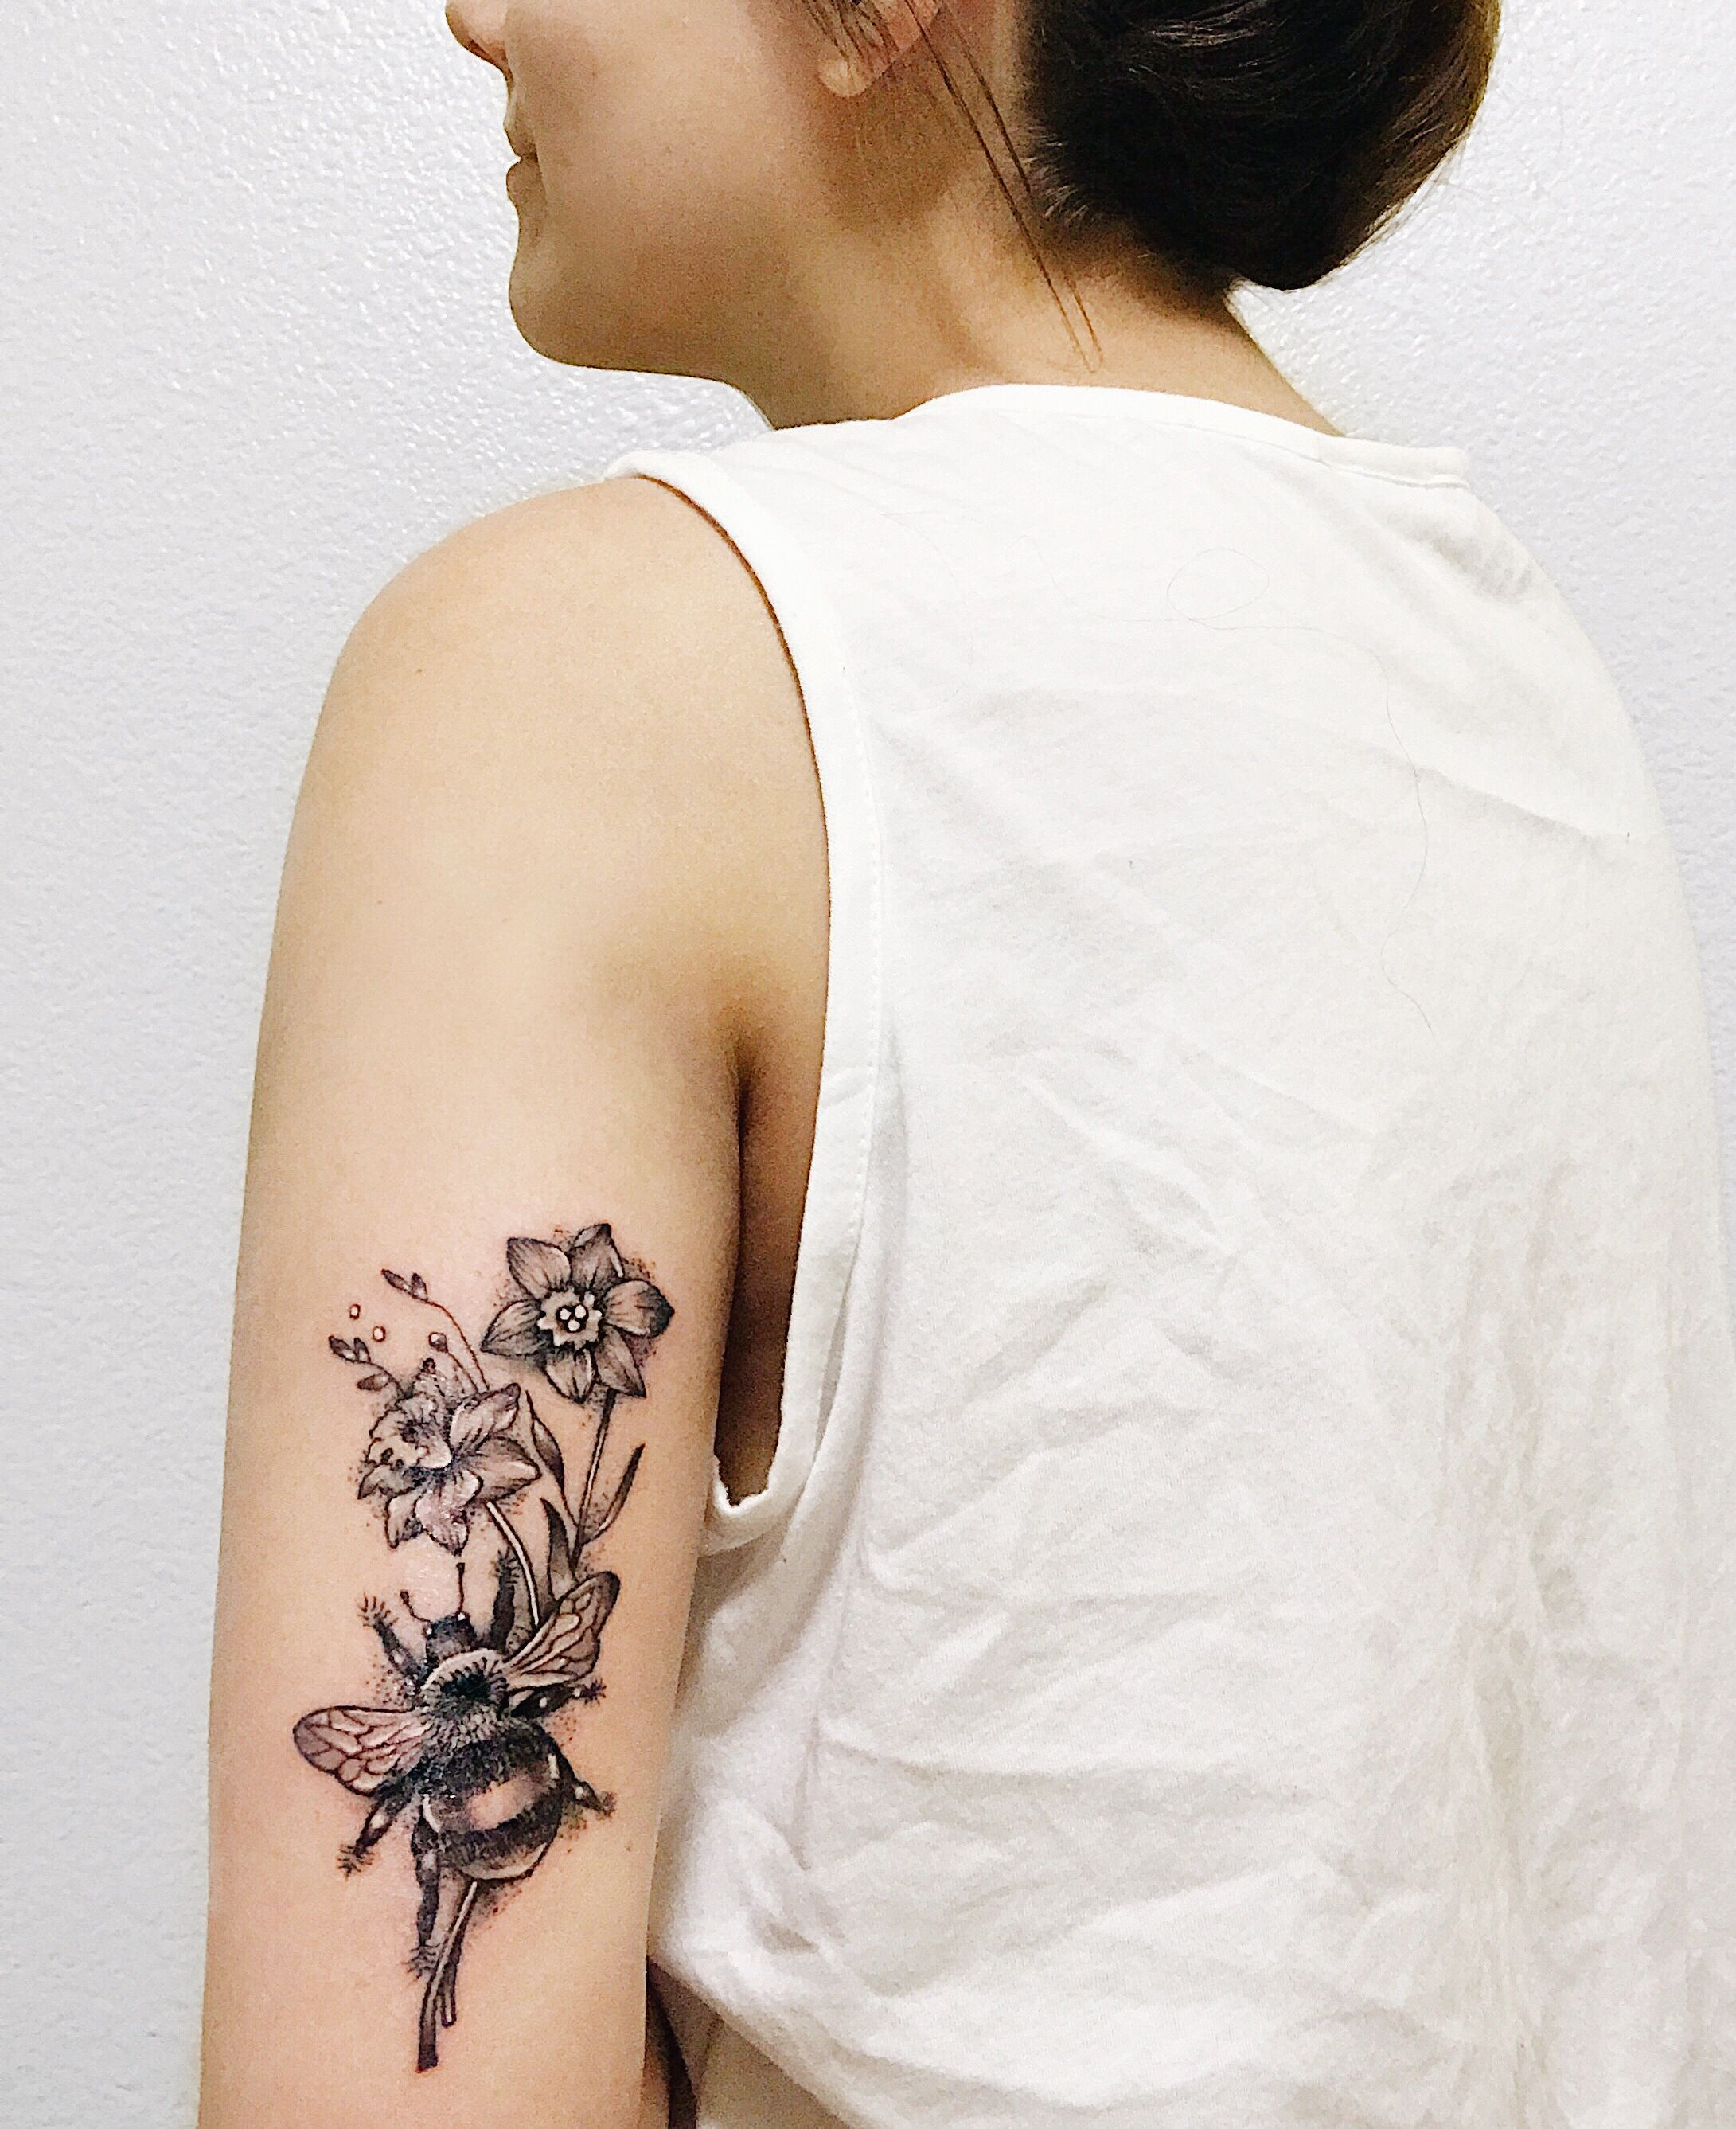 December Birth Flower Narcissus Bumble Bee Tattoo (With